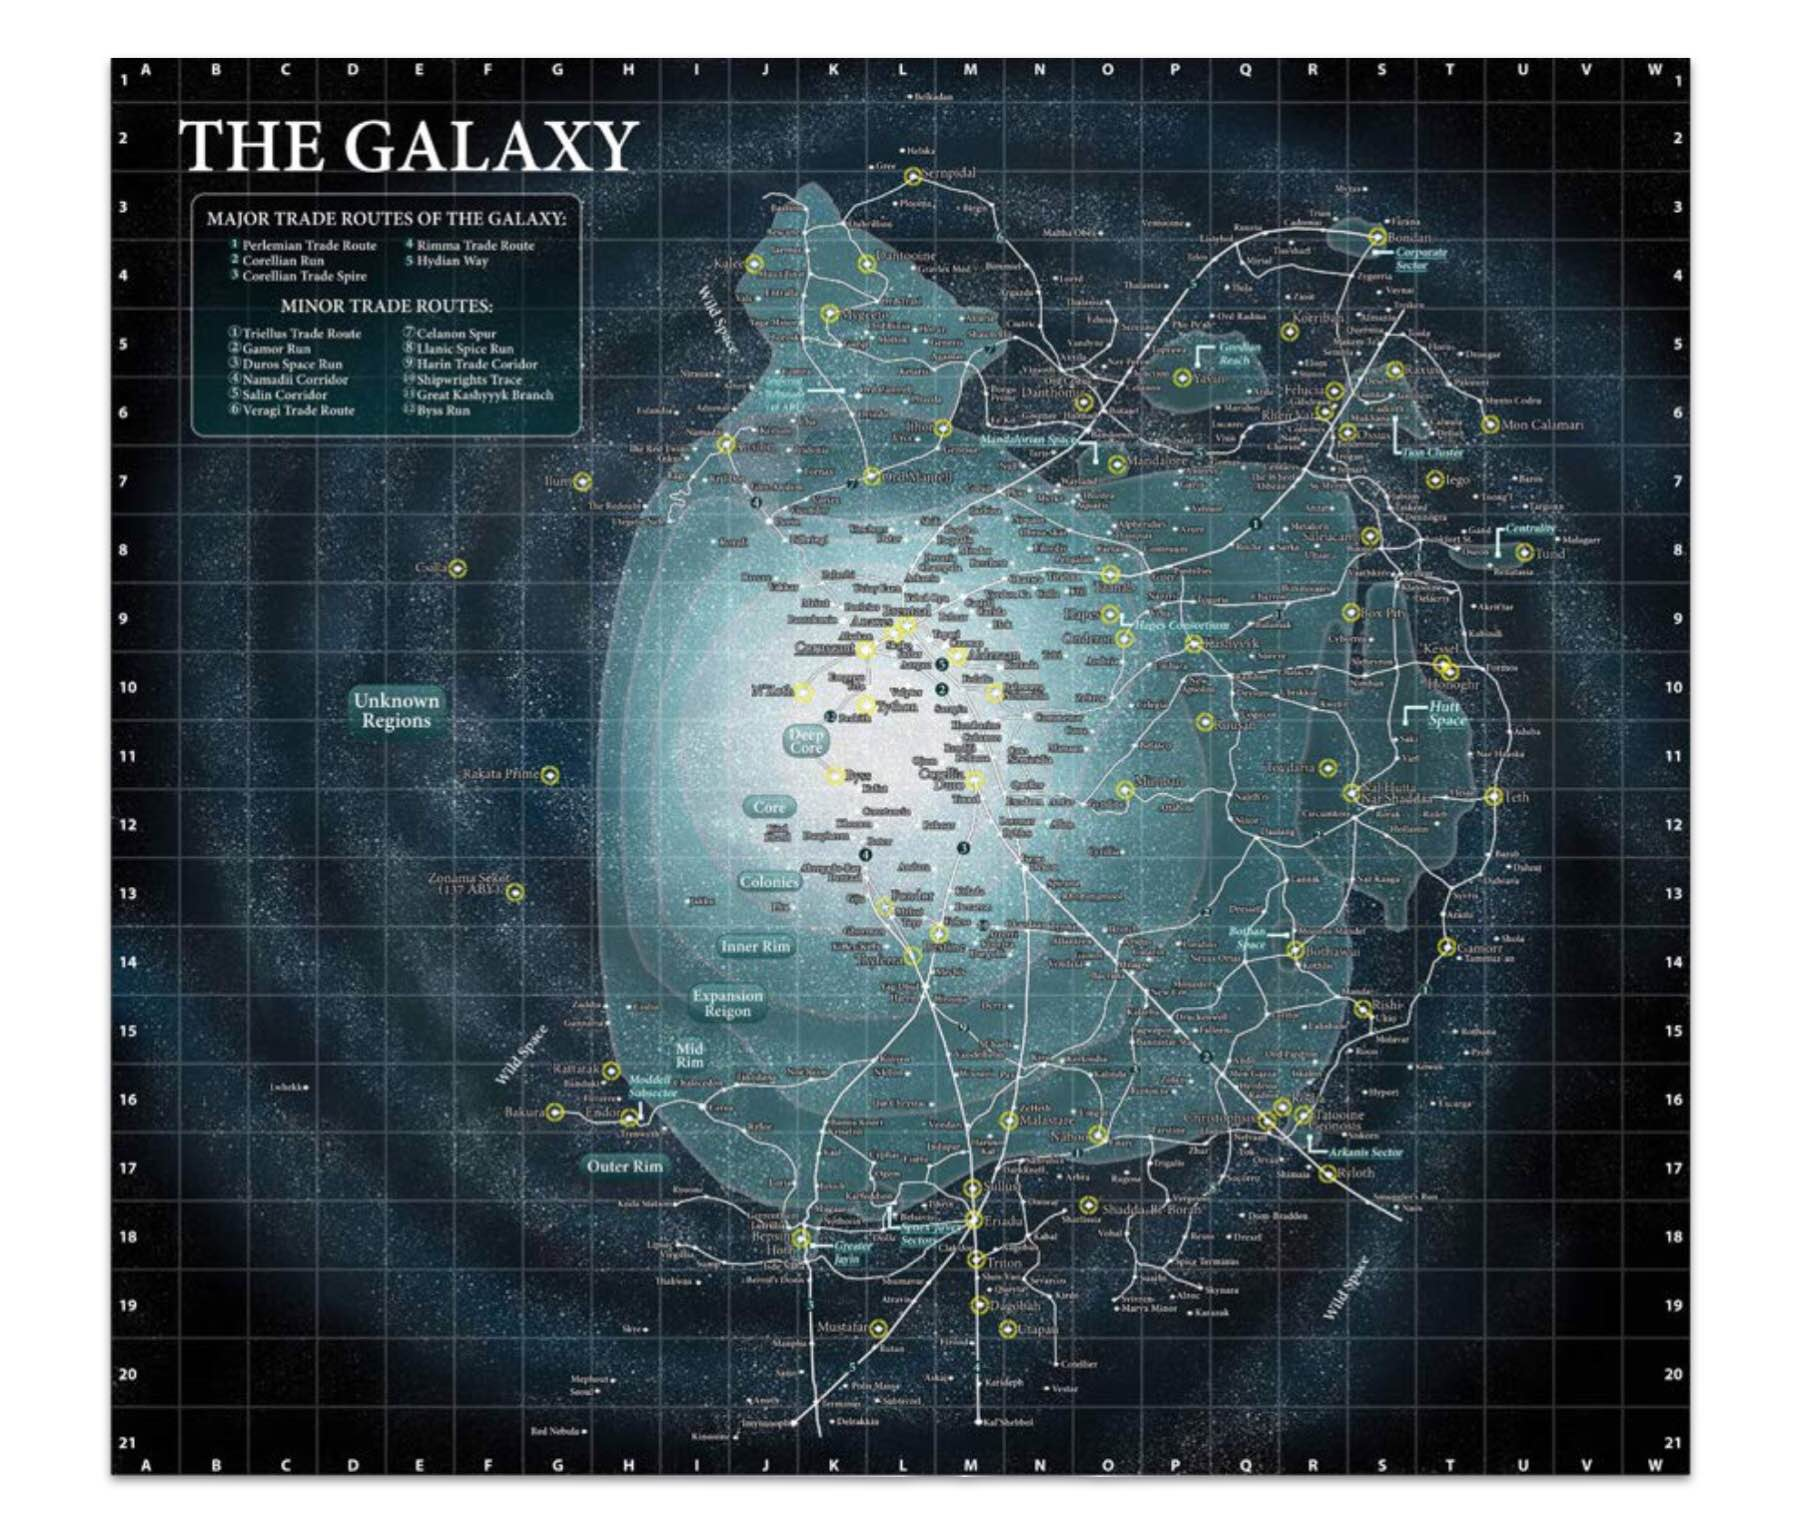 maps-of-fictional-worlds-guide-star-wars-galaxy